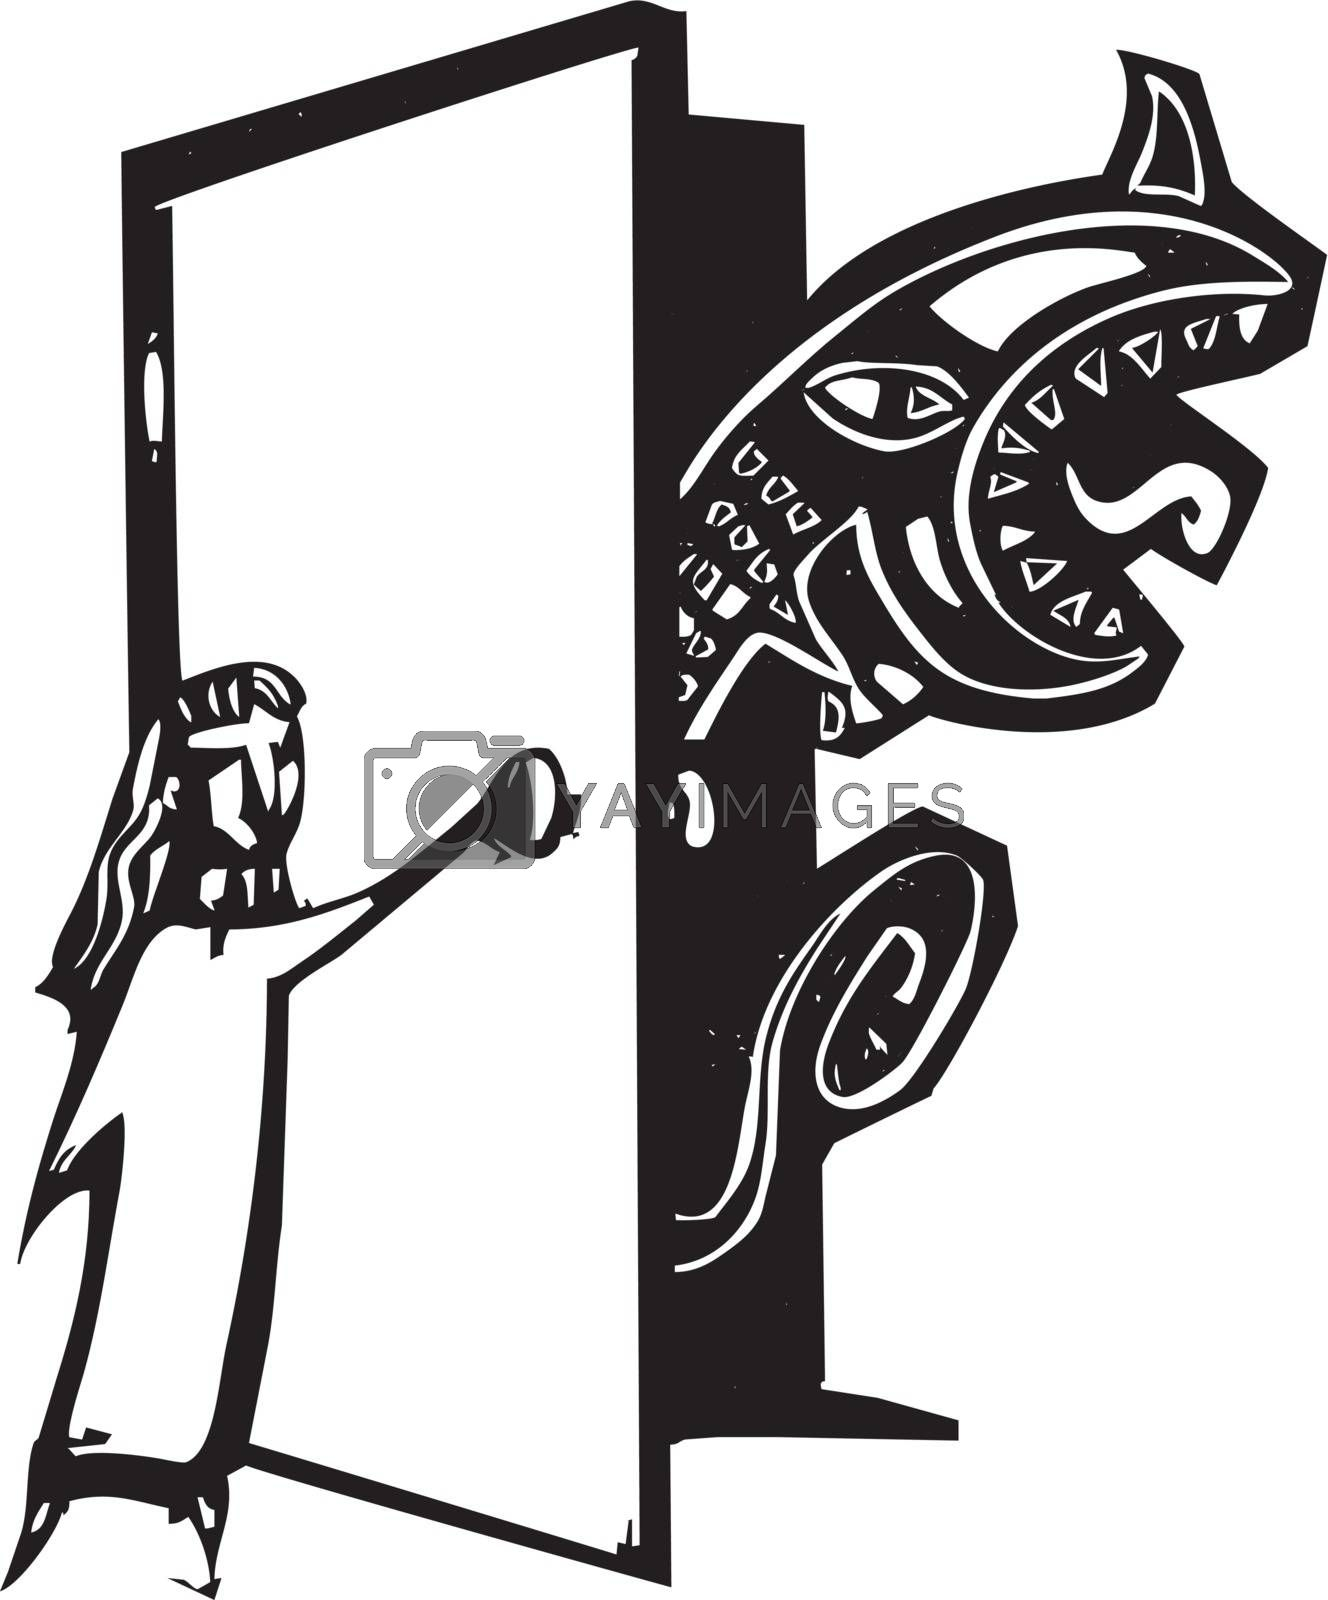 Woodcut style image of a girl opening her closet to find a monster.